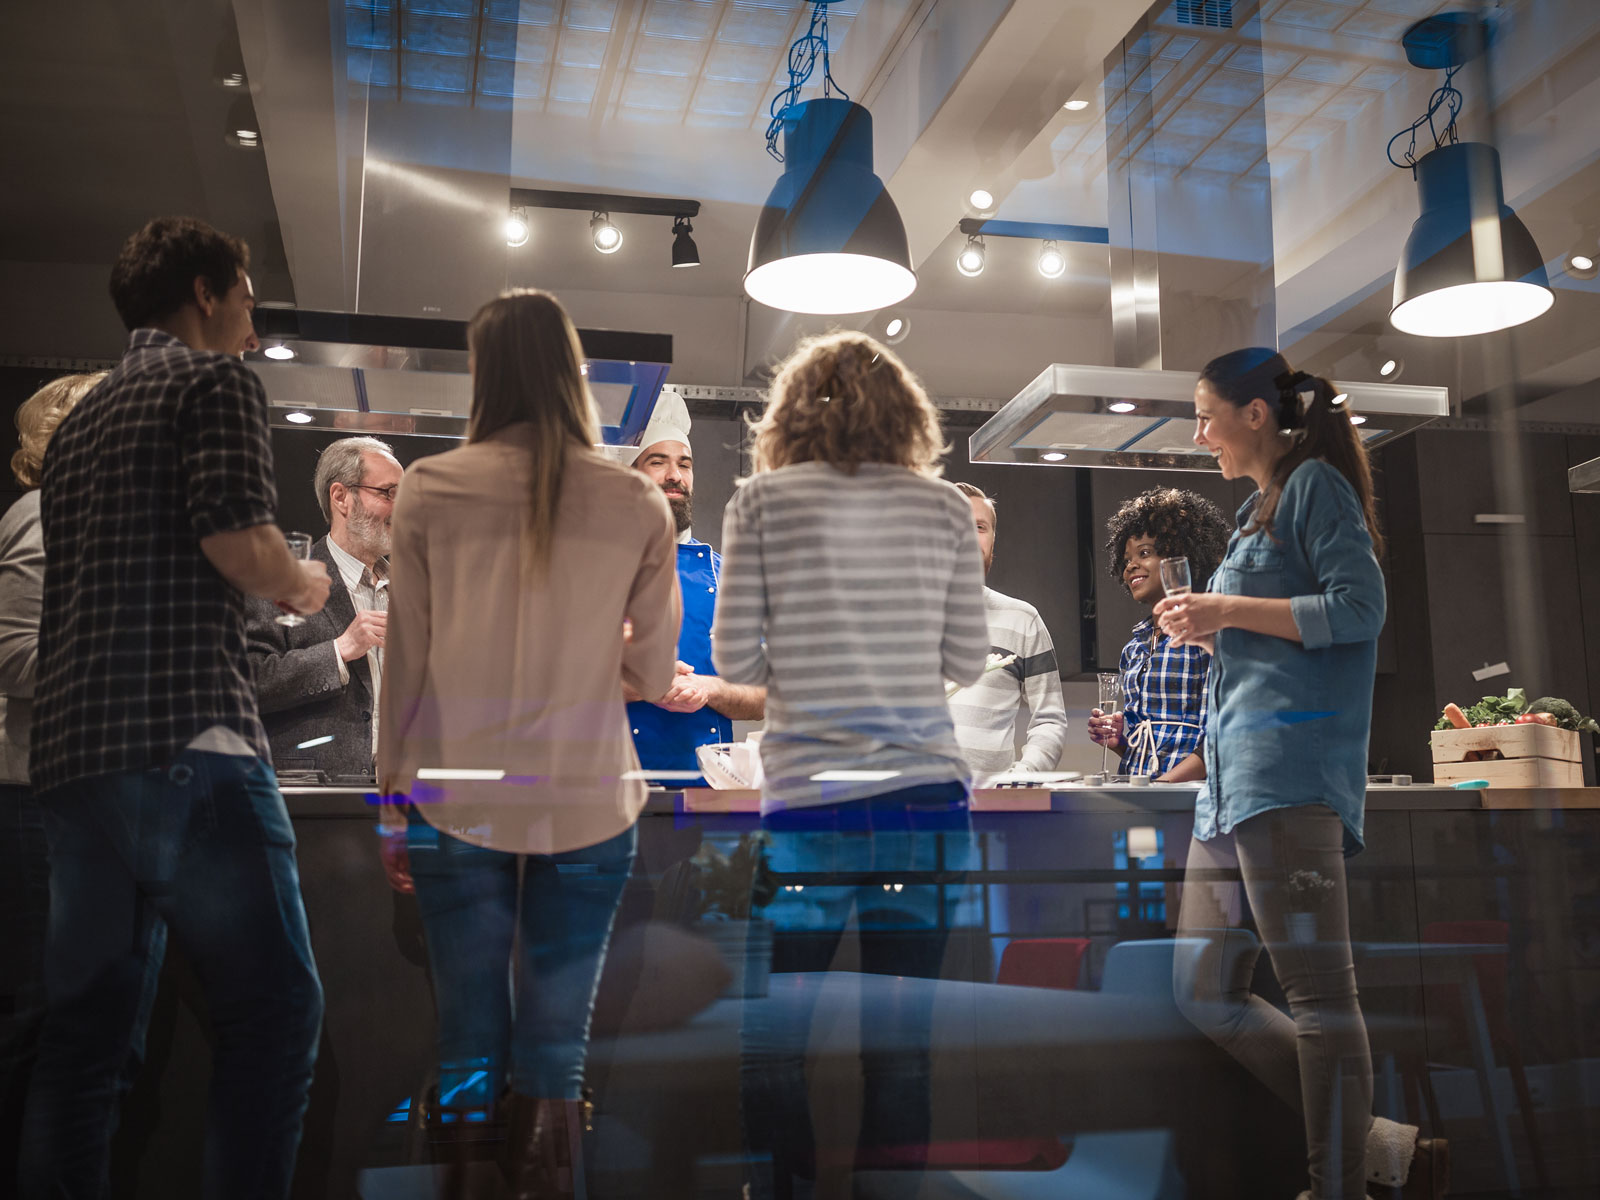 People standing in a professional kitchen celebrating